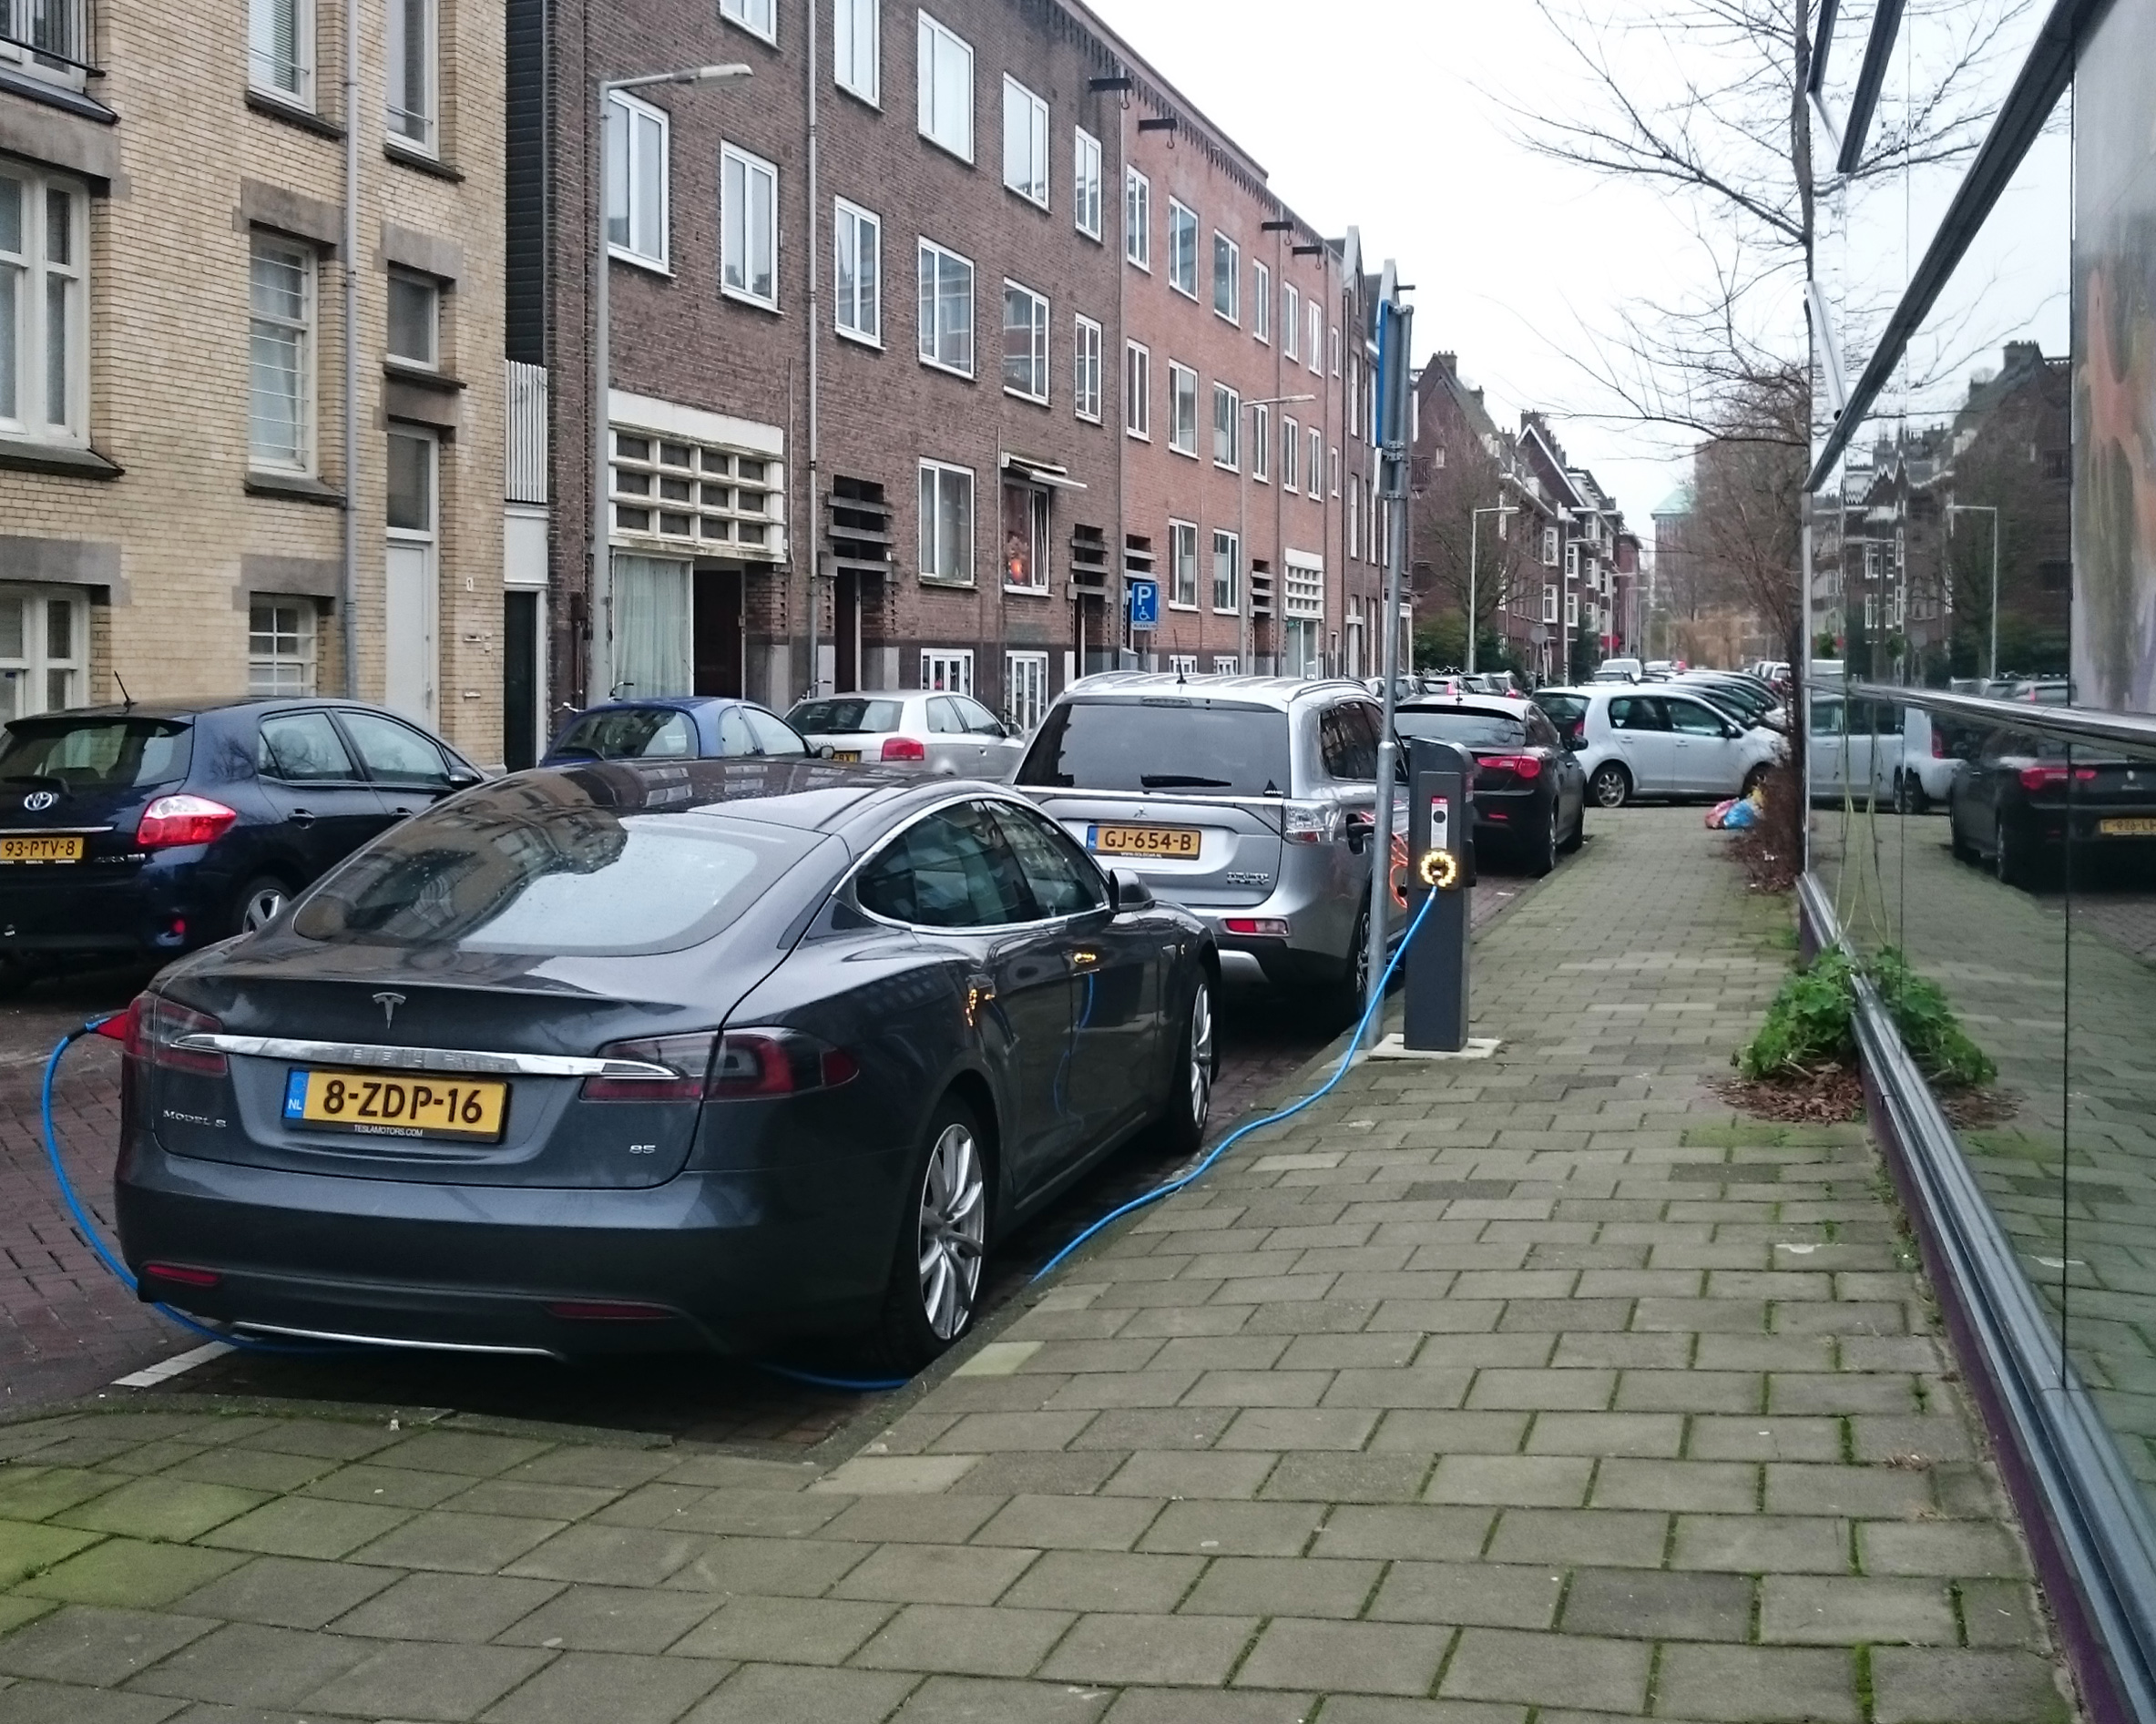 Cars_in_the_city-_electric,_Amsterdam_(33330608512).jpg